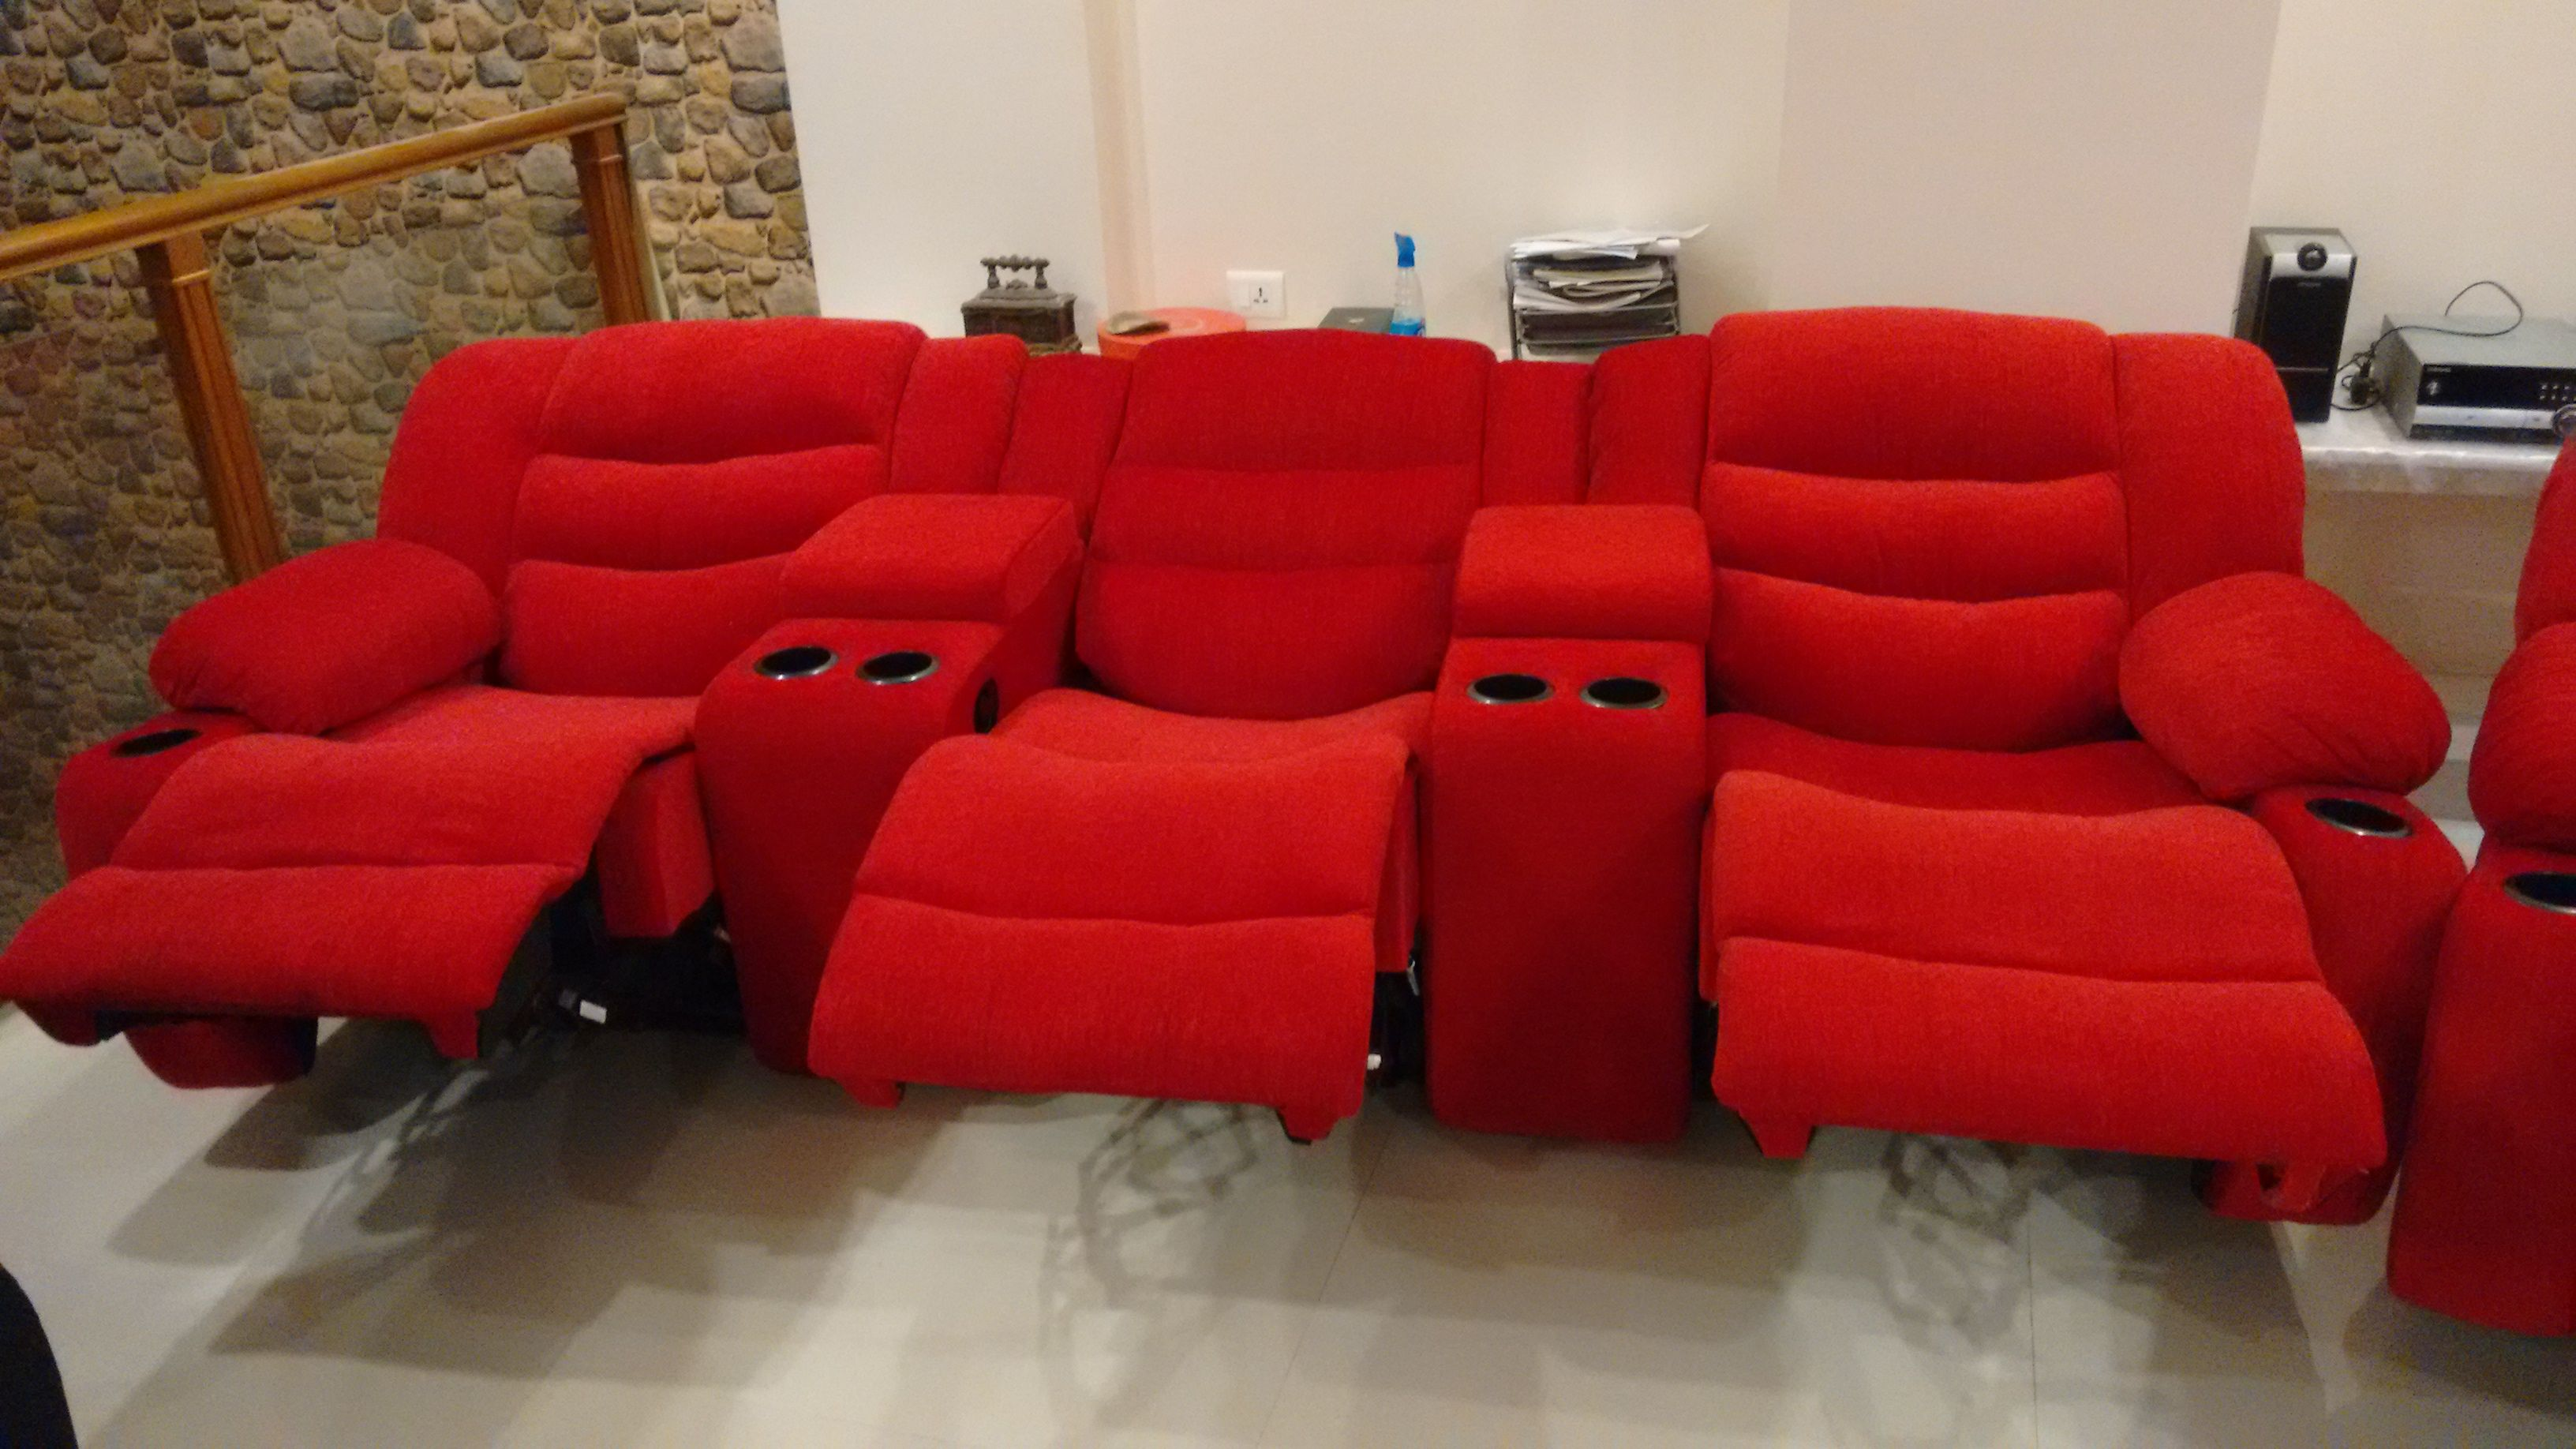 Factory Outlet Srivay Recliners Sofas Is The Best Place To Prices Starting From 8000 Inr Manual Motorised Features Cup Holders